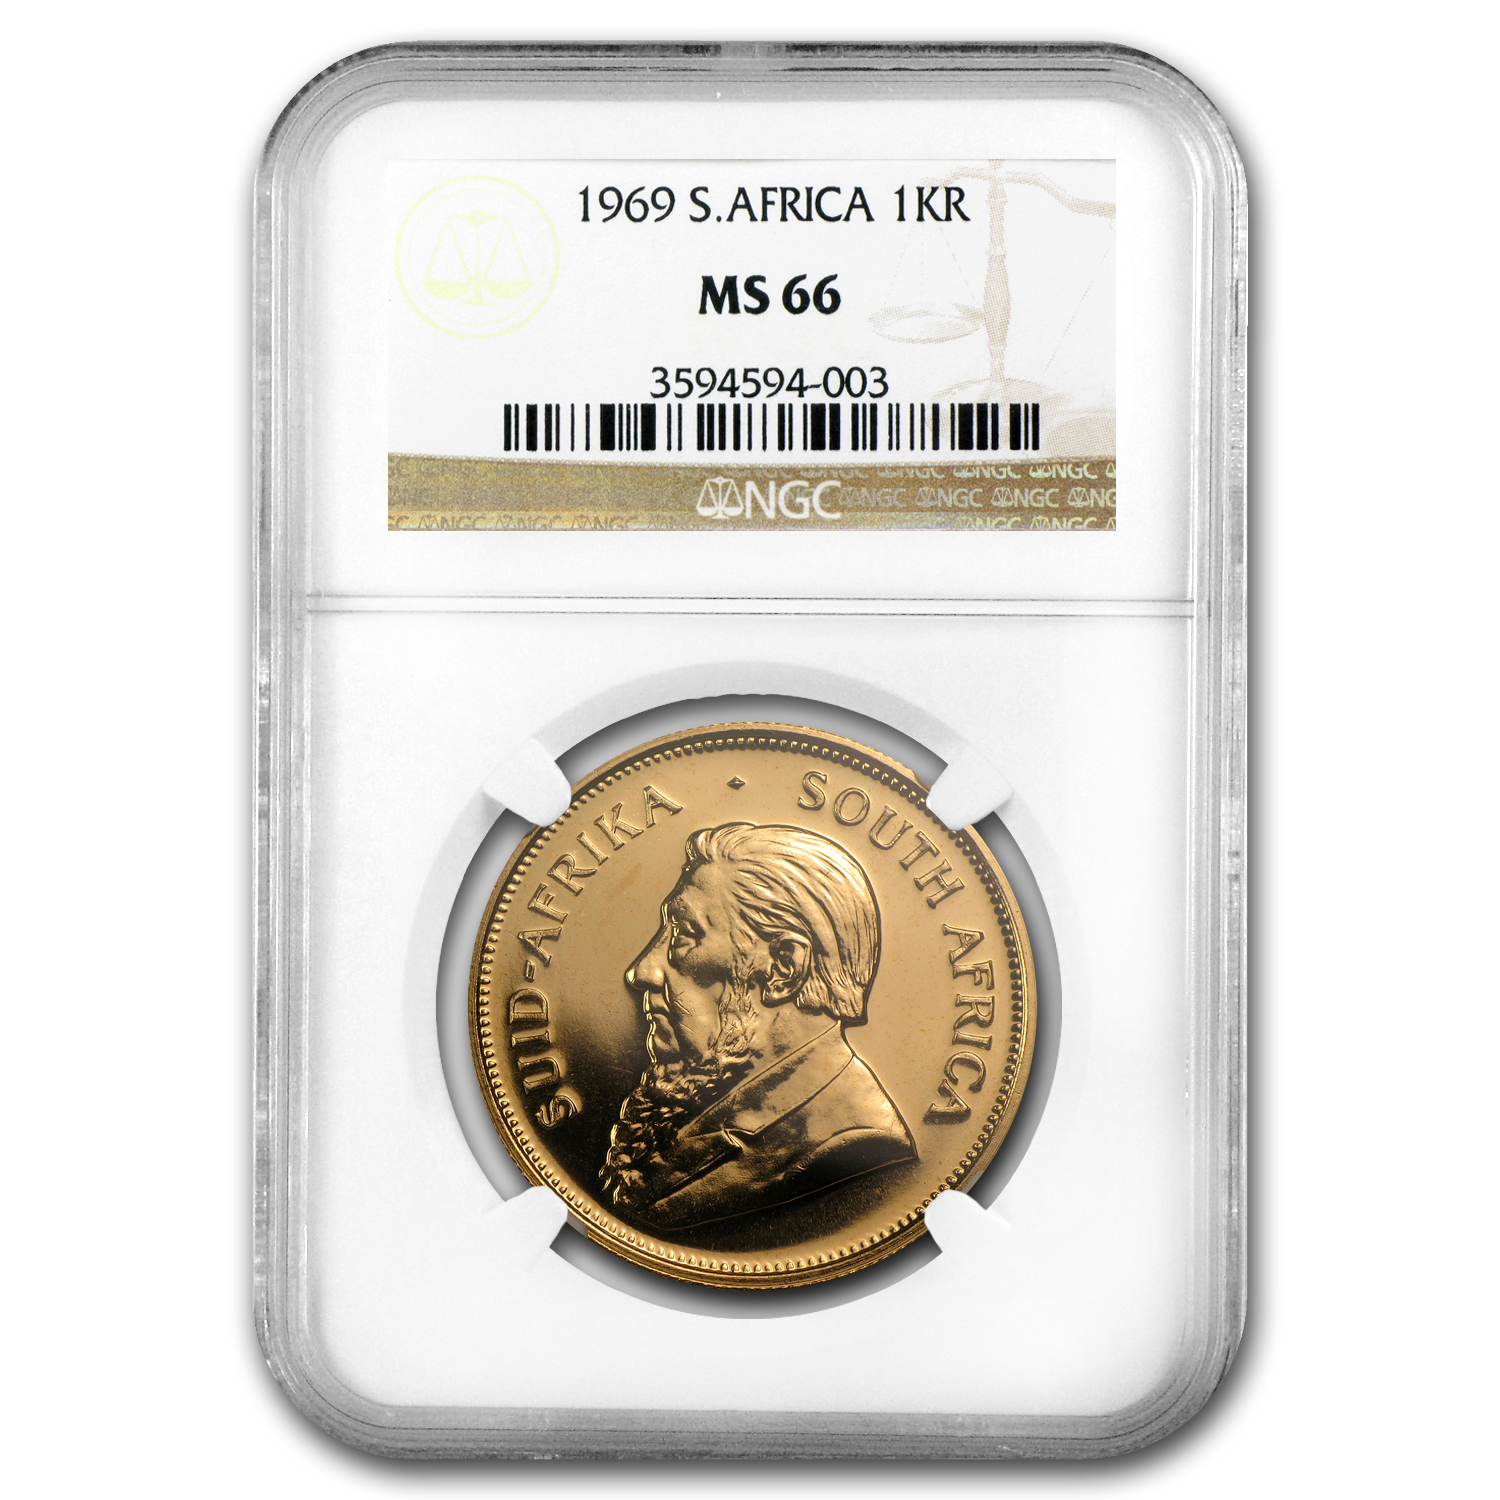 1969 1 oz Gold South African Krugerrand MS-66 NGC